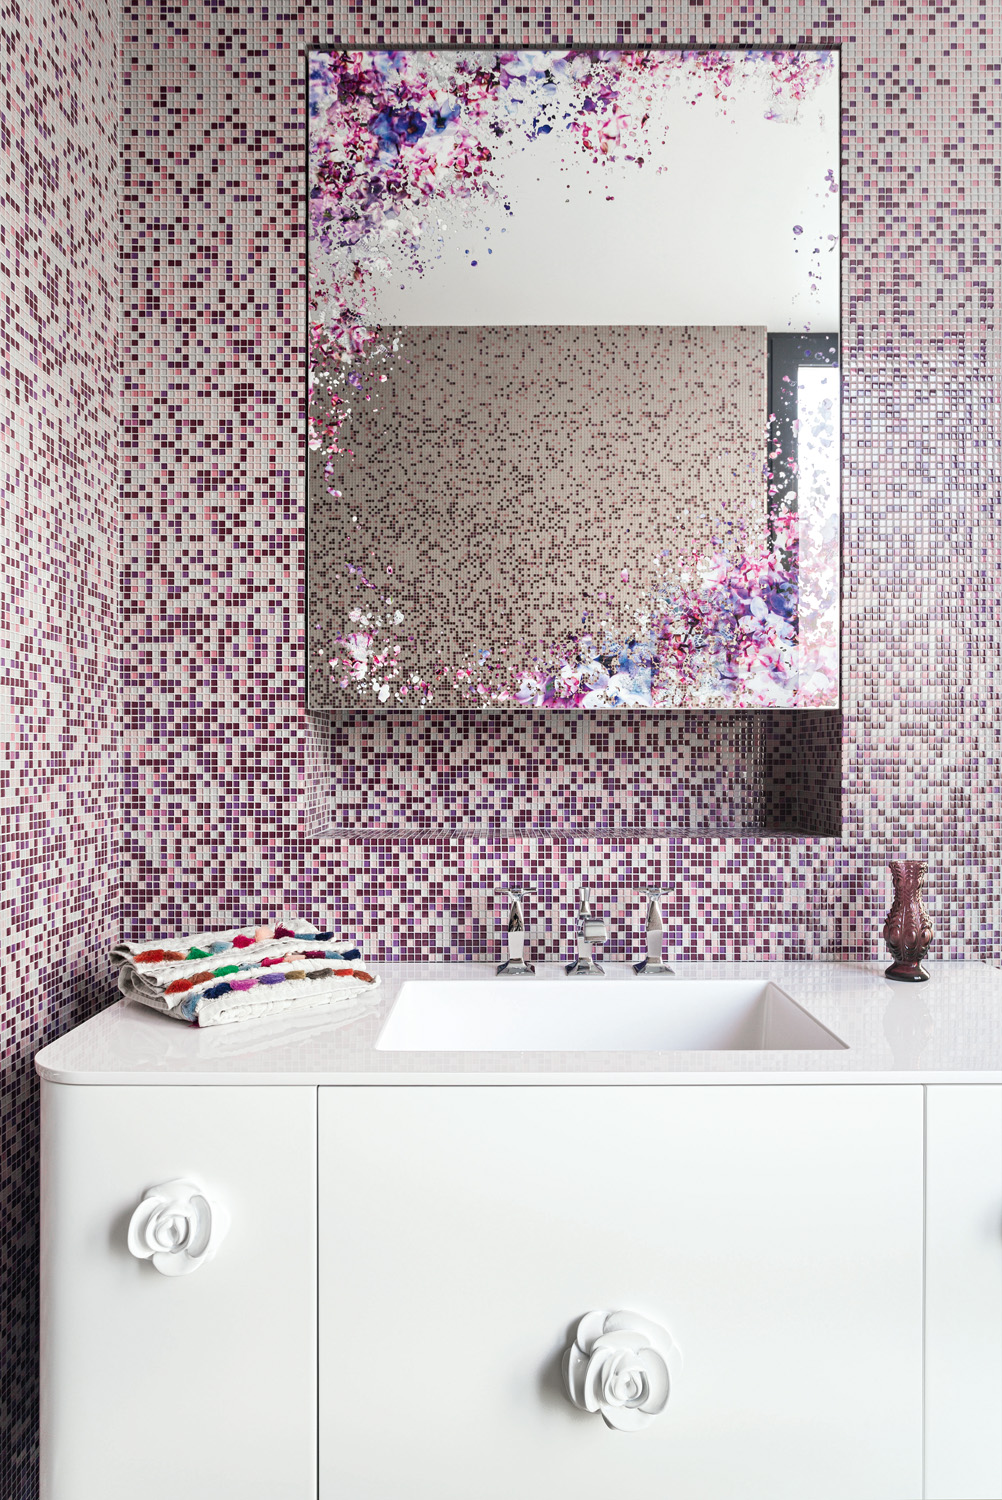 A colourful finish on the bathroom mirror packs a punch